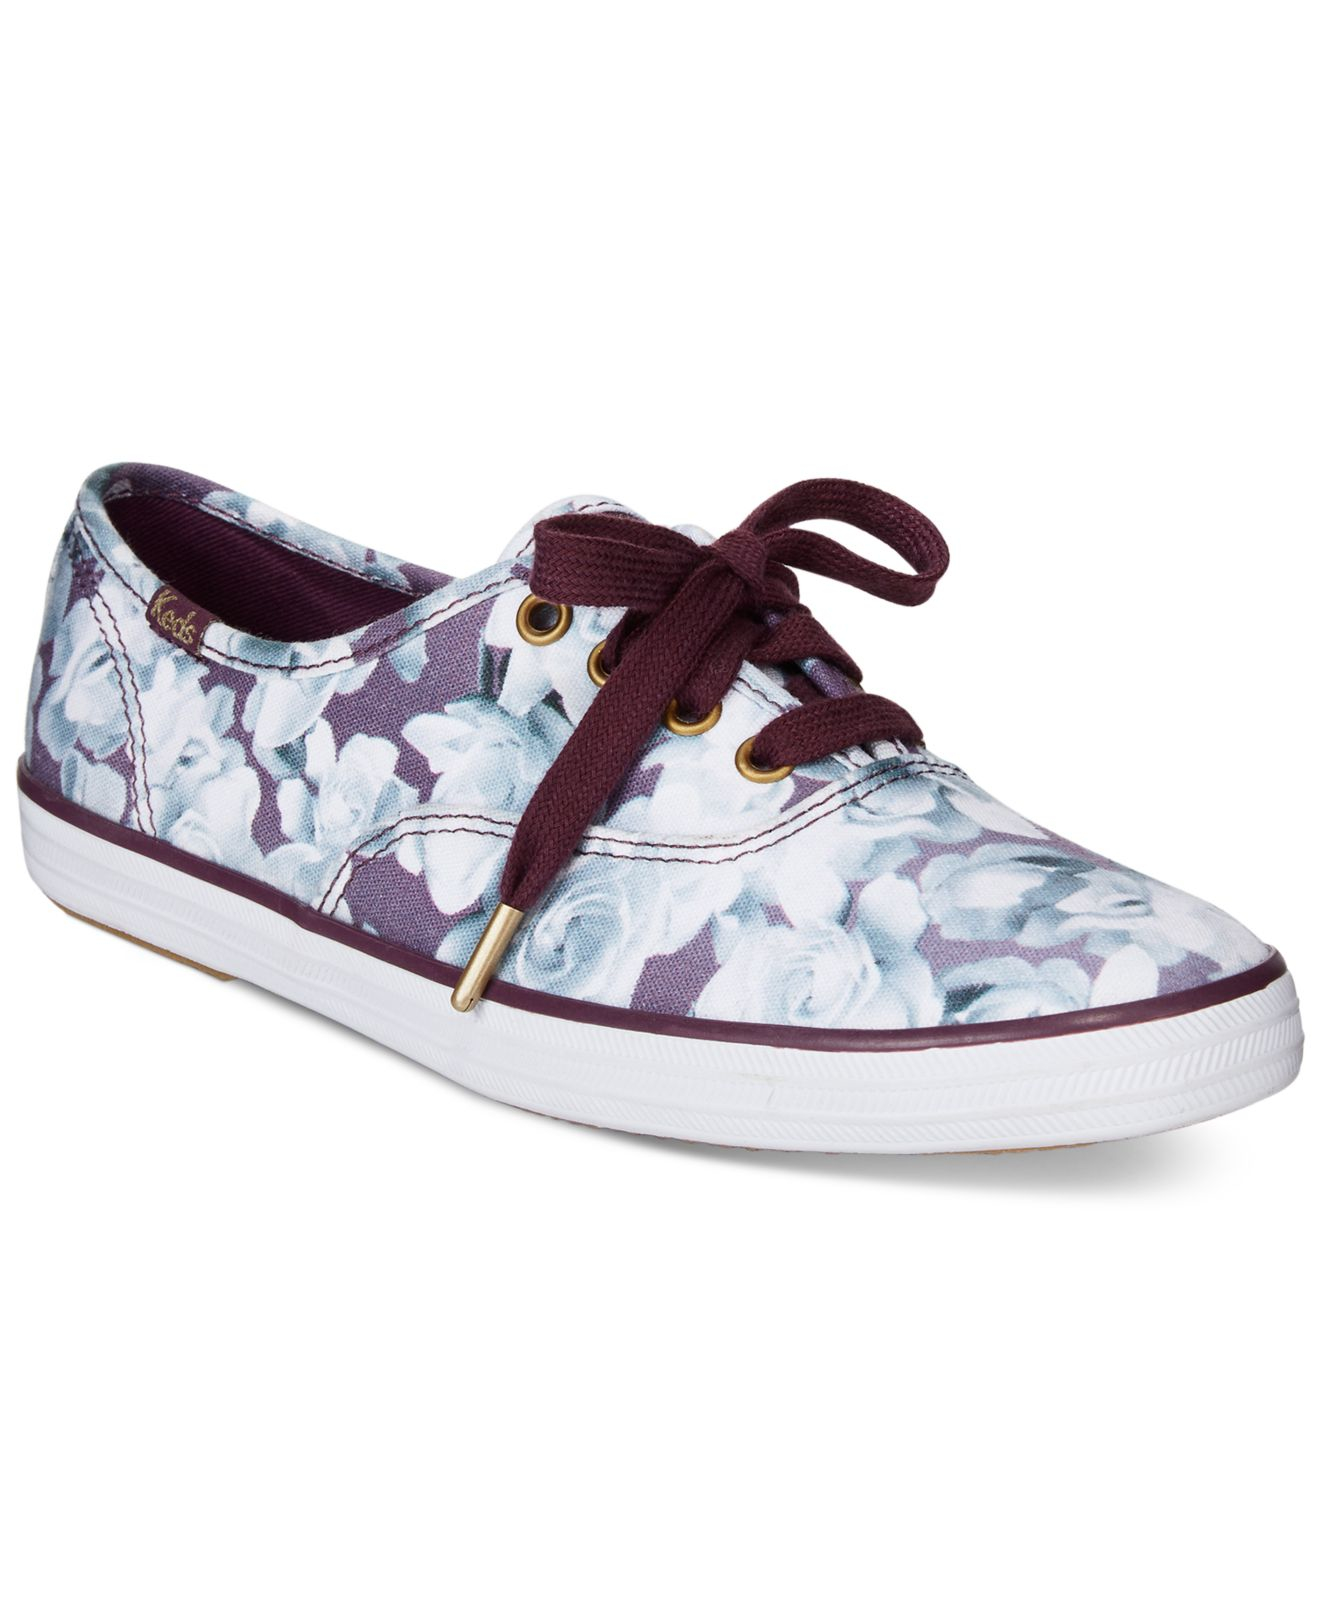 6f50192af750 Lyst - Keds Women s Limited Edition Taylor Swift Champion Floral ...